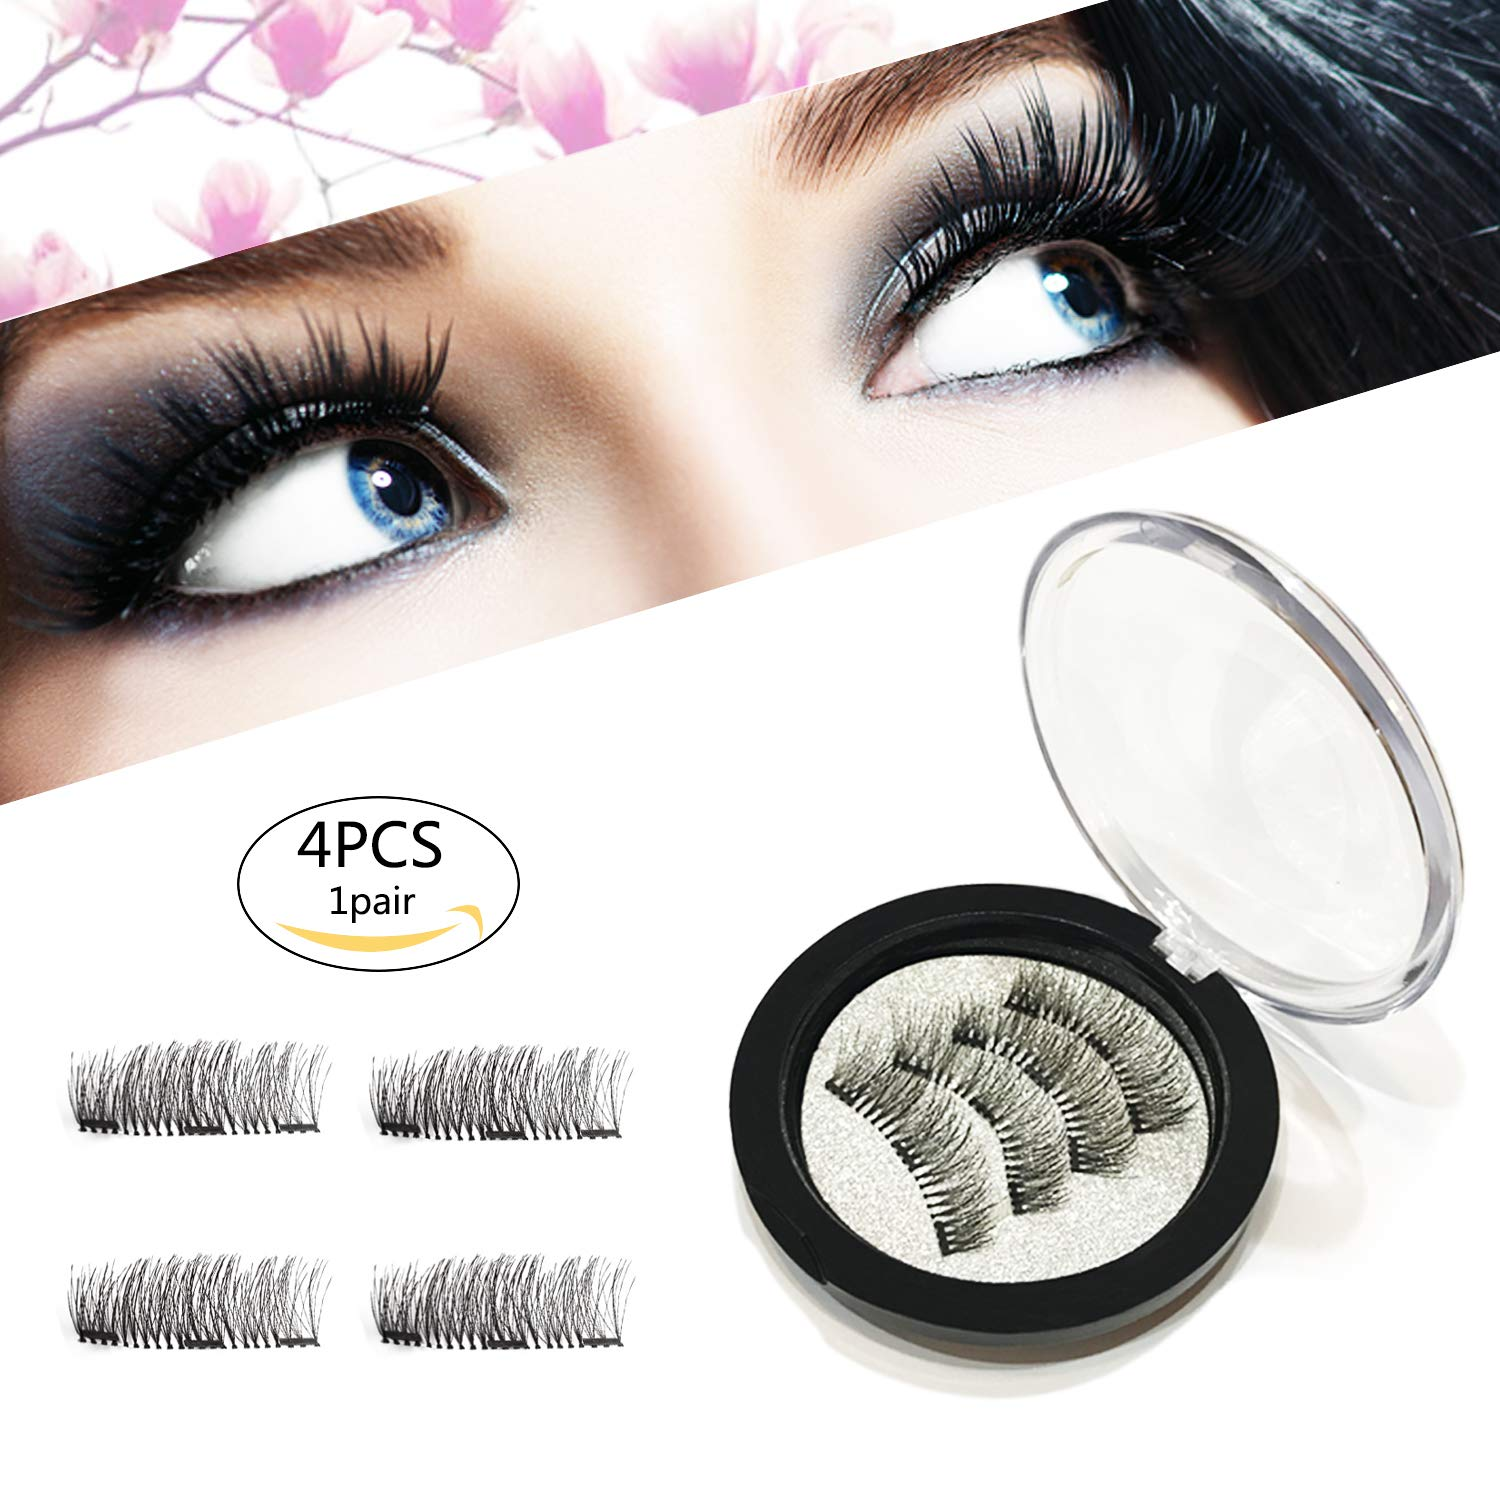 f6af53e7a7a Amazon.com : Magnetic Eyelashes Glue Free 3 Magnets, Best 3D Full Eye False  Lashes Extension For Natural Look, Reusable Ultra Thin Fake Eyelashes, ...